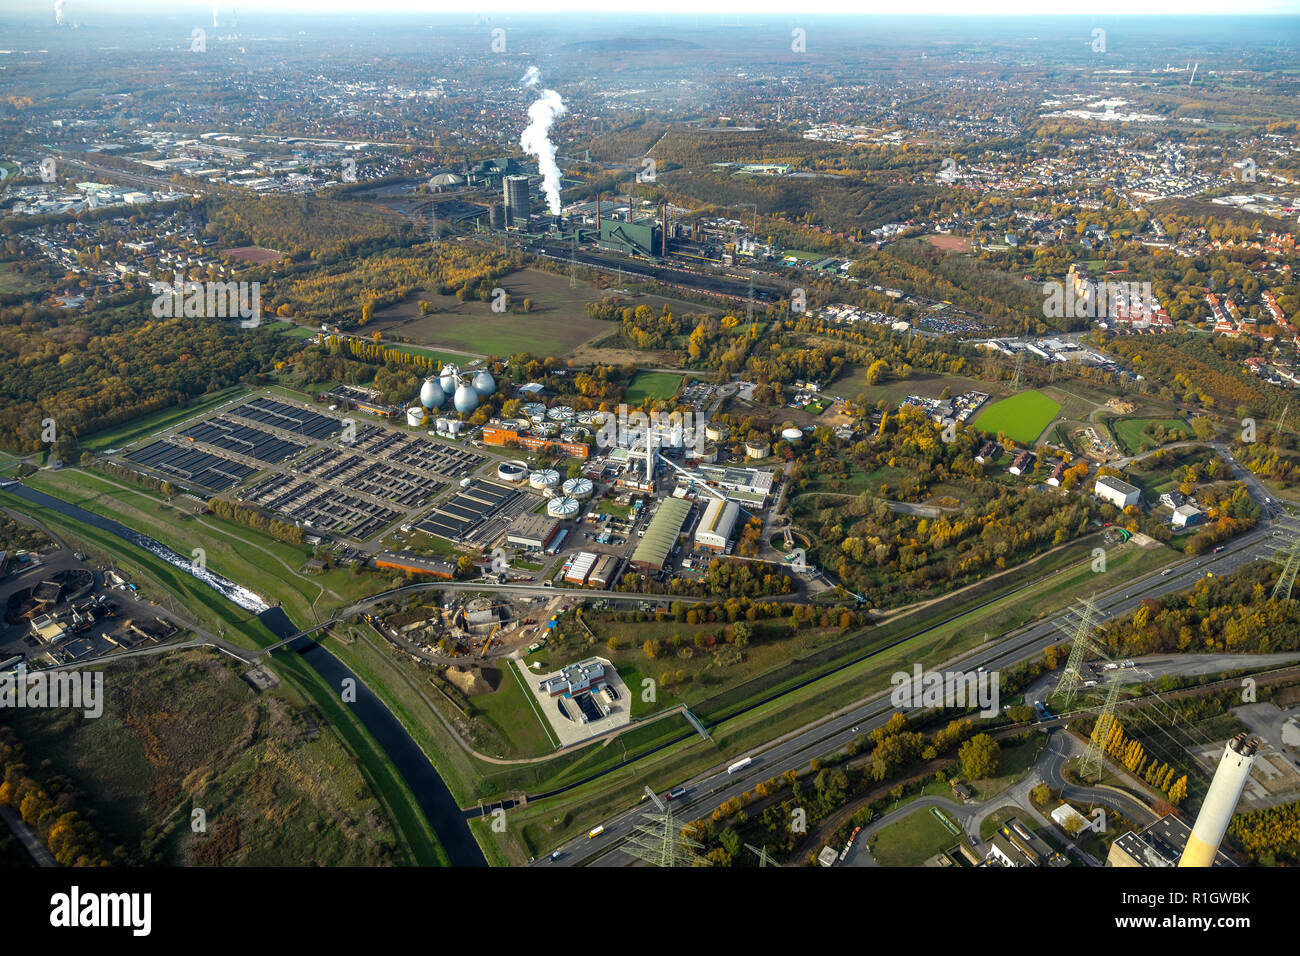 Aerial view, Bottrop wastewater treatment plant of the Emschercooperative, Emscher, new building Pump house, water management, Karnap, Bottrop, Ruhr a - Stock Image